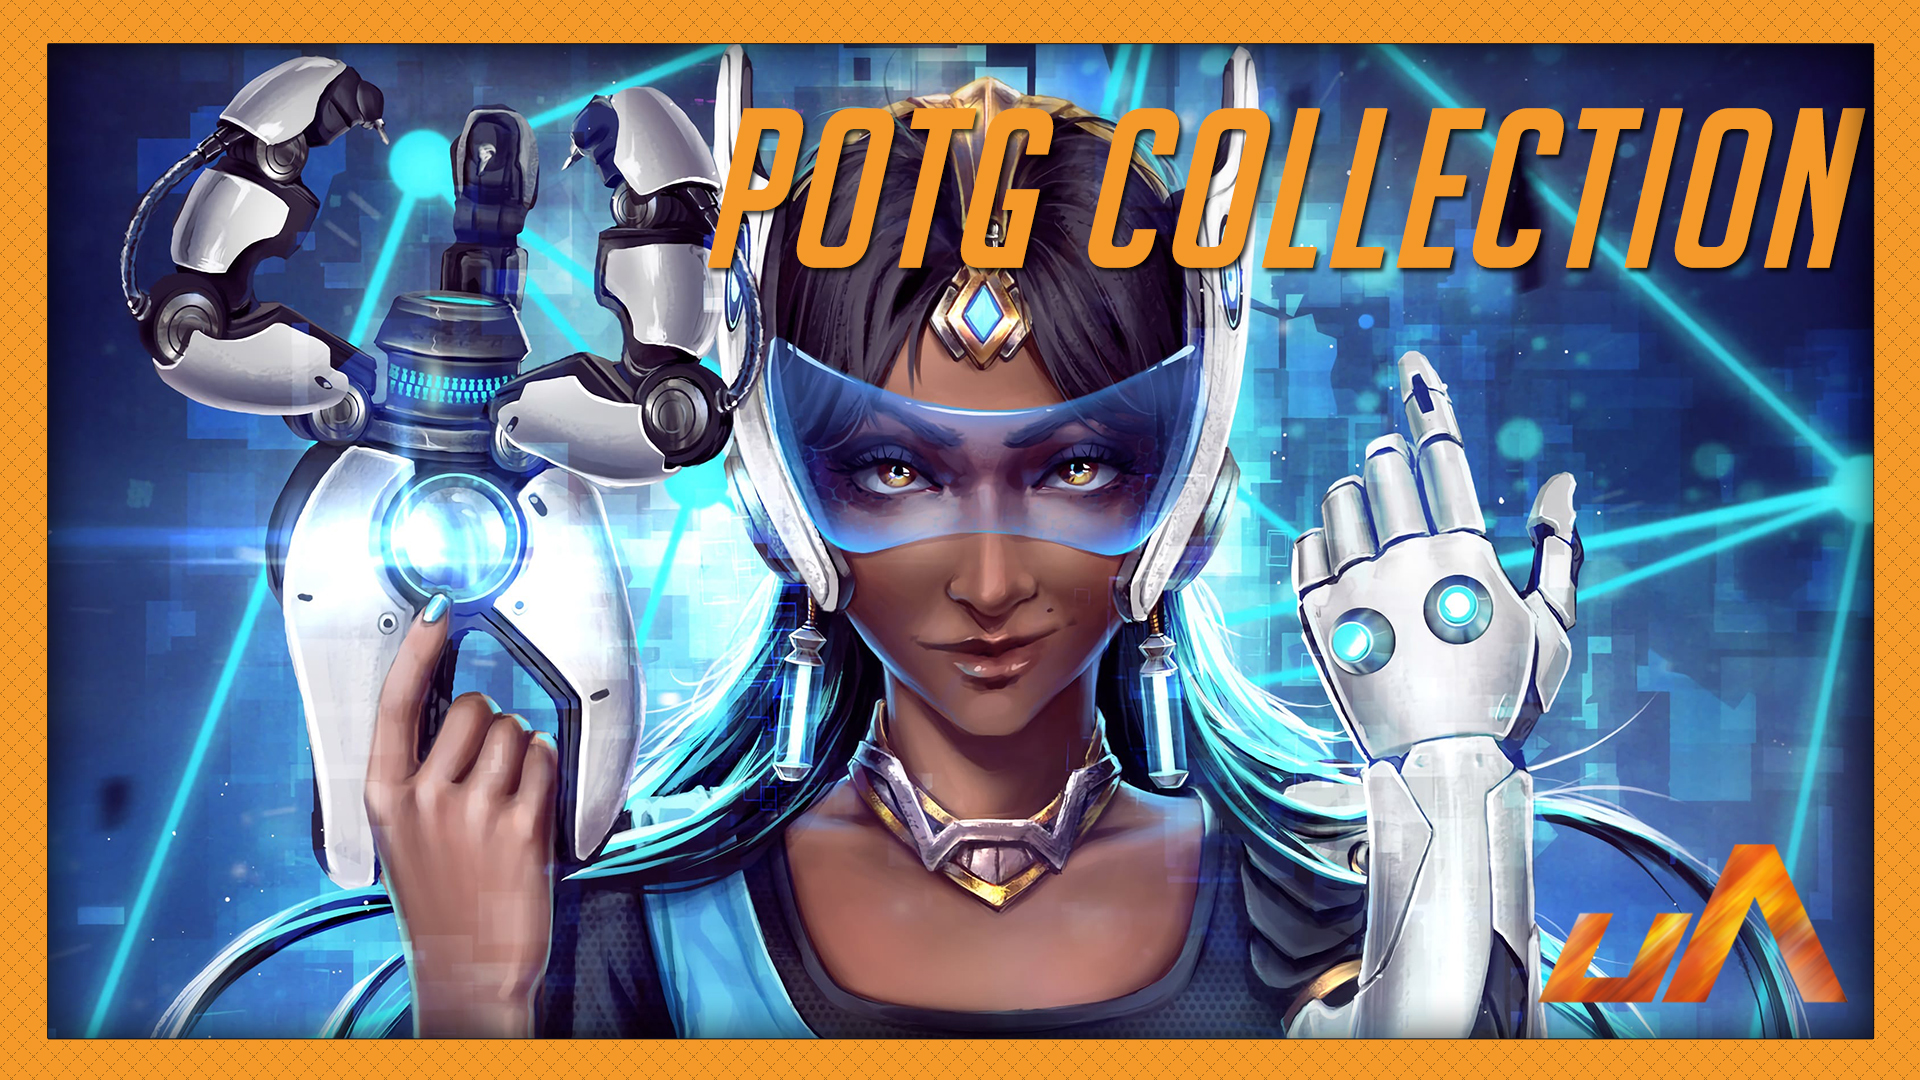 Overwatch PotG Collection Issue 1